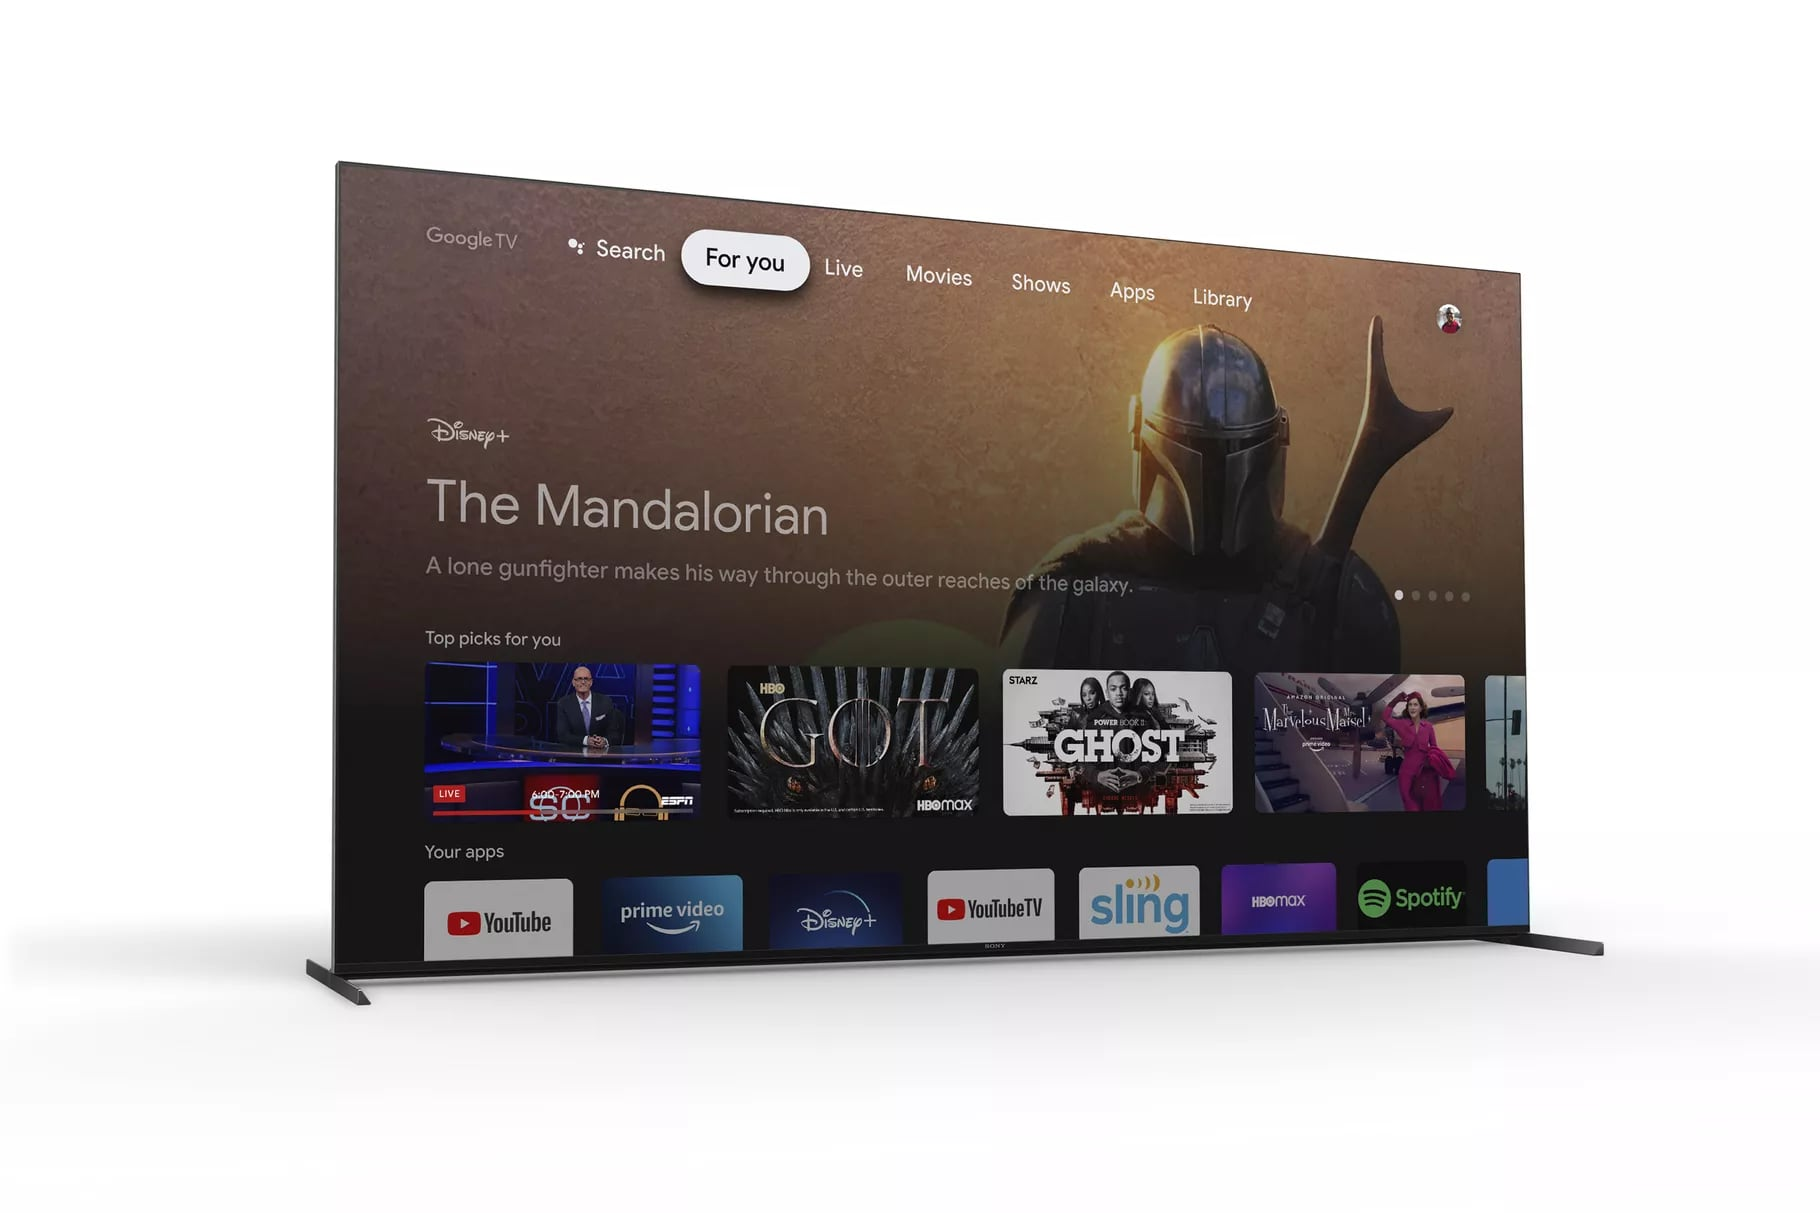 Sony's new 2021 OLED and LCD TVs are actually ready for PS5 | Trusted Reviews